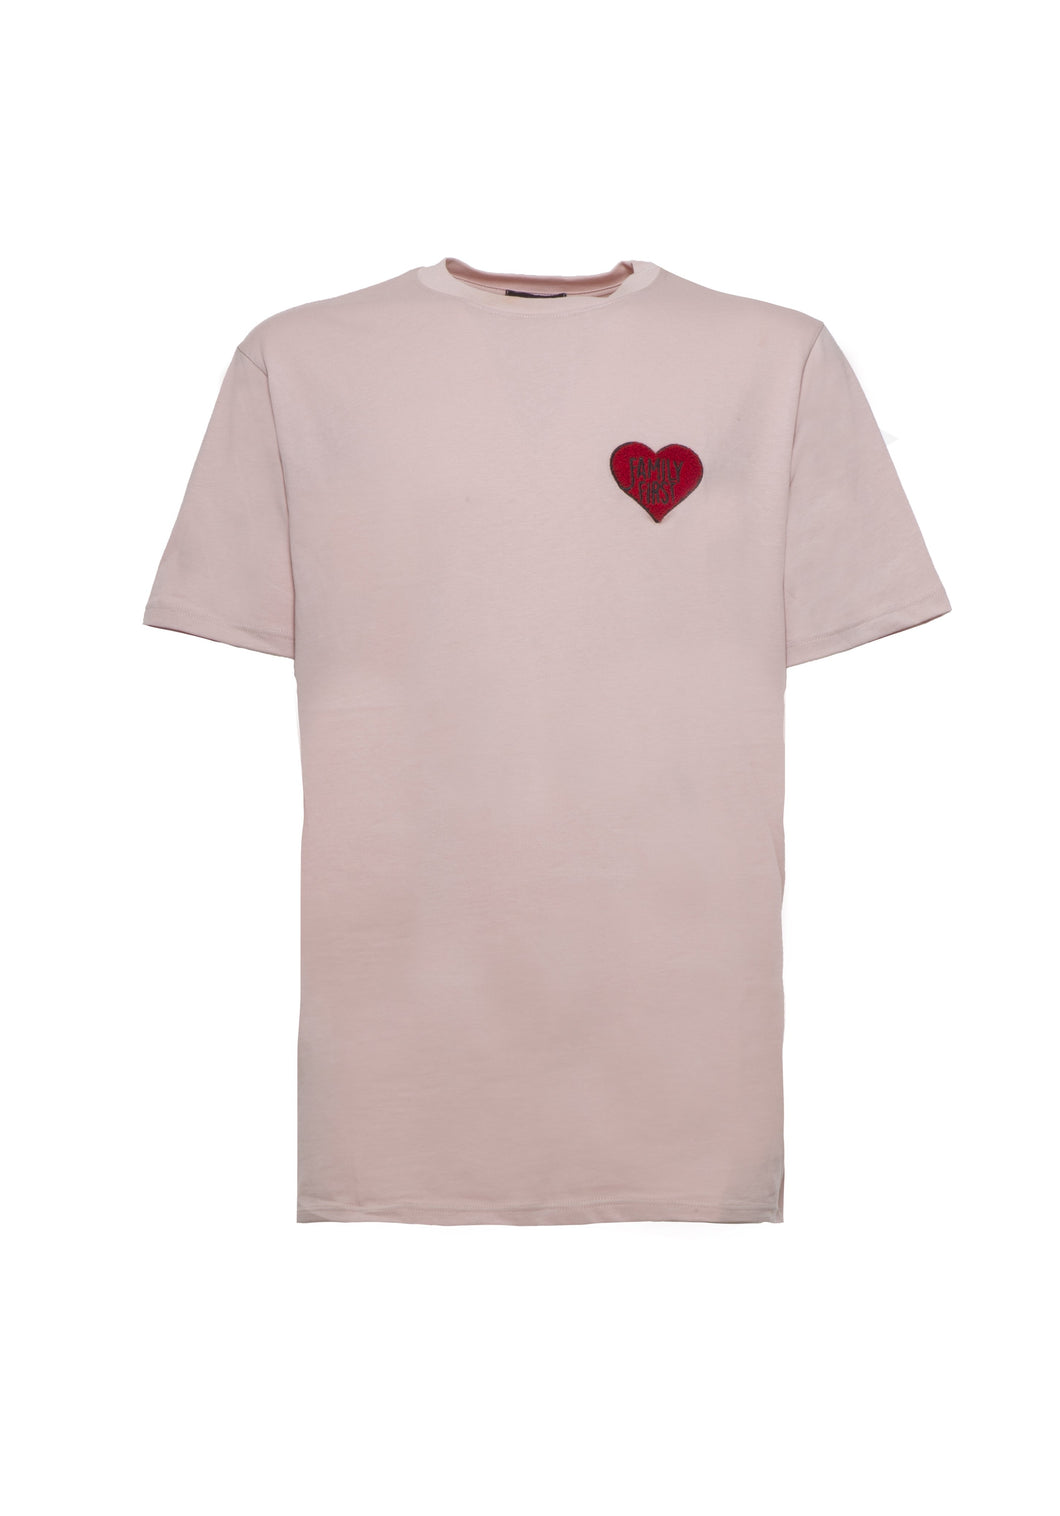 Family First - T-Shirt Heart Pink